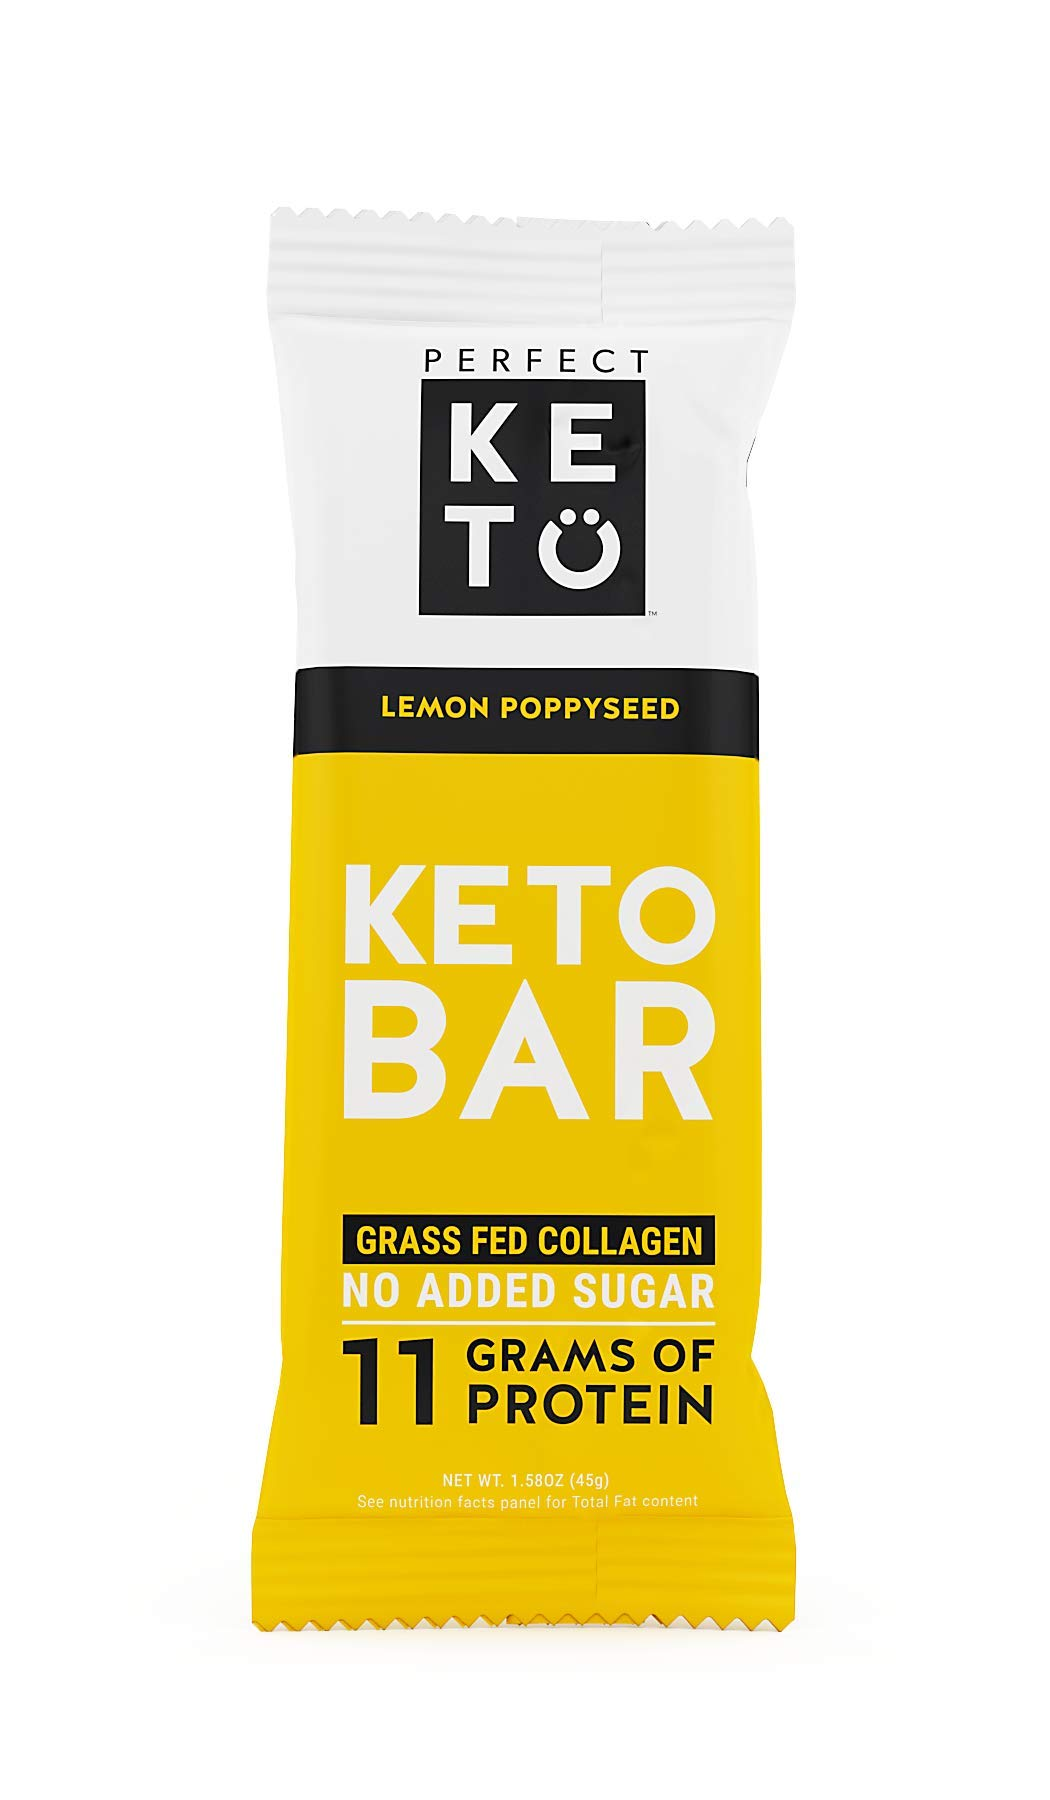 New! Perfect Keto Bar, Keto Snack (12 Count), No Added Sugar. 10g of Protein, Coconut Oil, and Collagen, with a Touch of Sea Salt and Stevia. (12 Bars, Lemon Poppyseed)